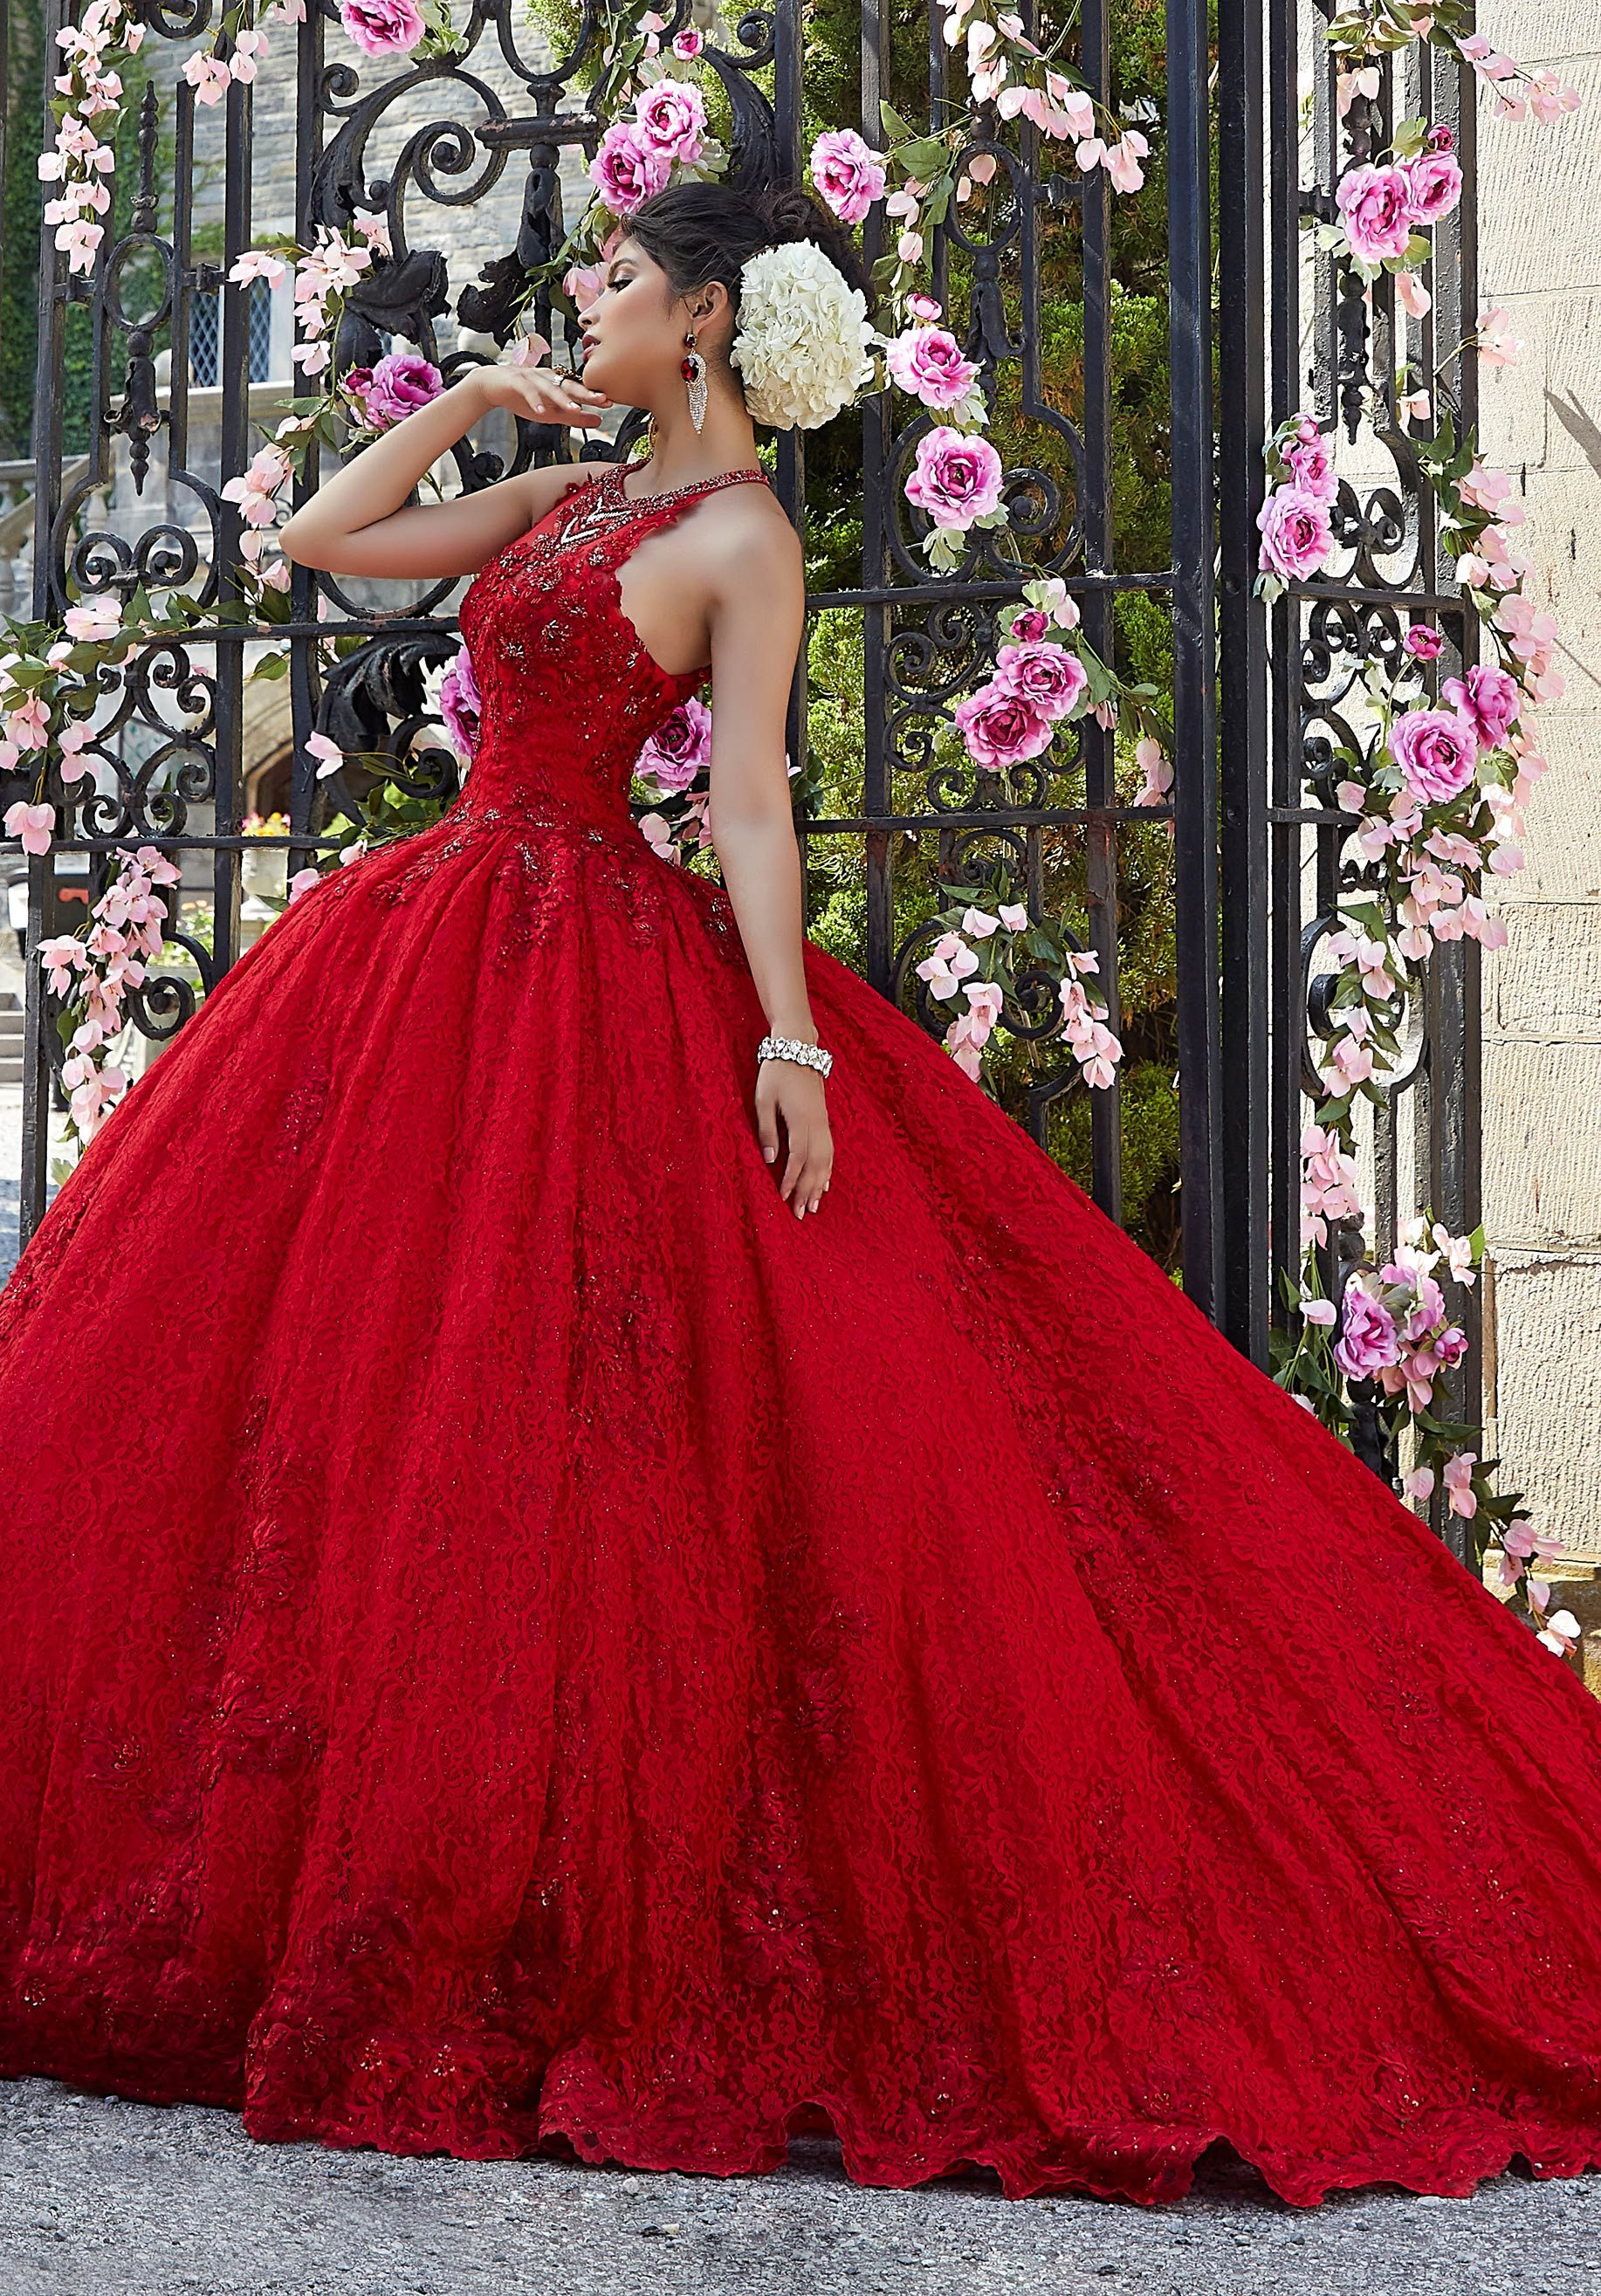 Lace And Sparkle Tulle Quinceanera Dress Morilee Style 34026 Black Quinceanera Dresses Pretty Quinceanera Dresses Quince Dresses [ 2630 x 1834 Pixel ]